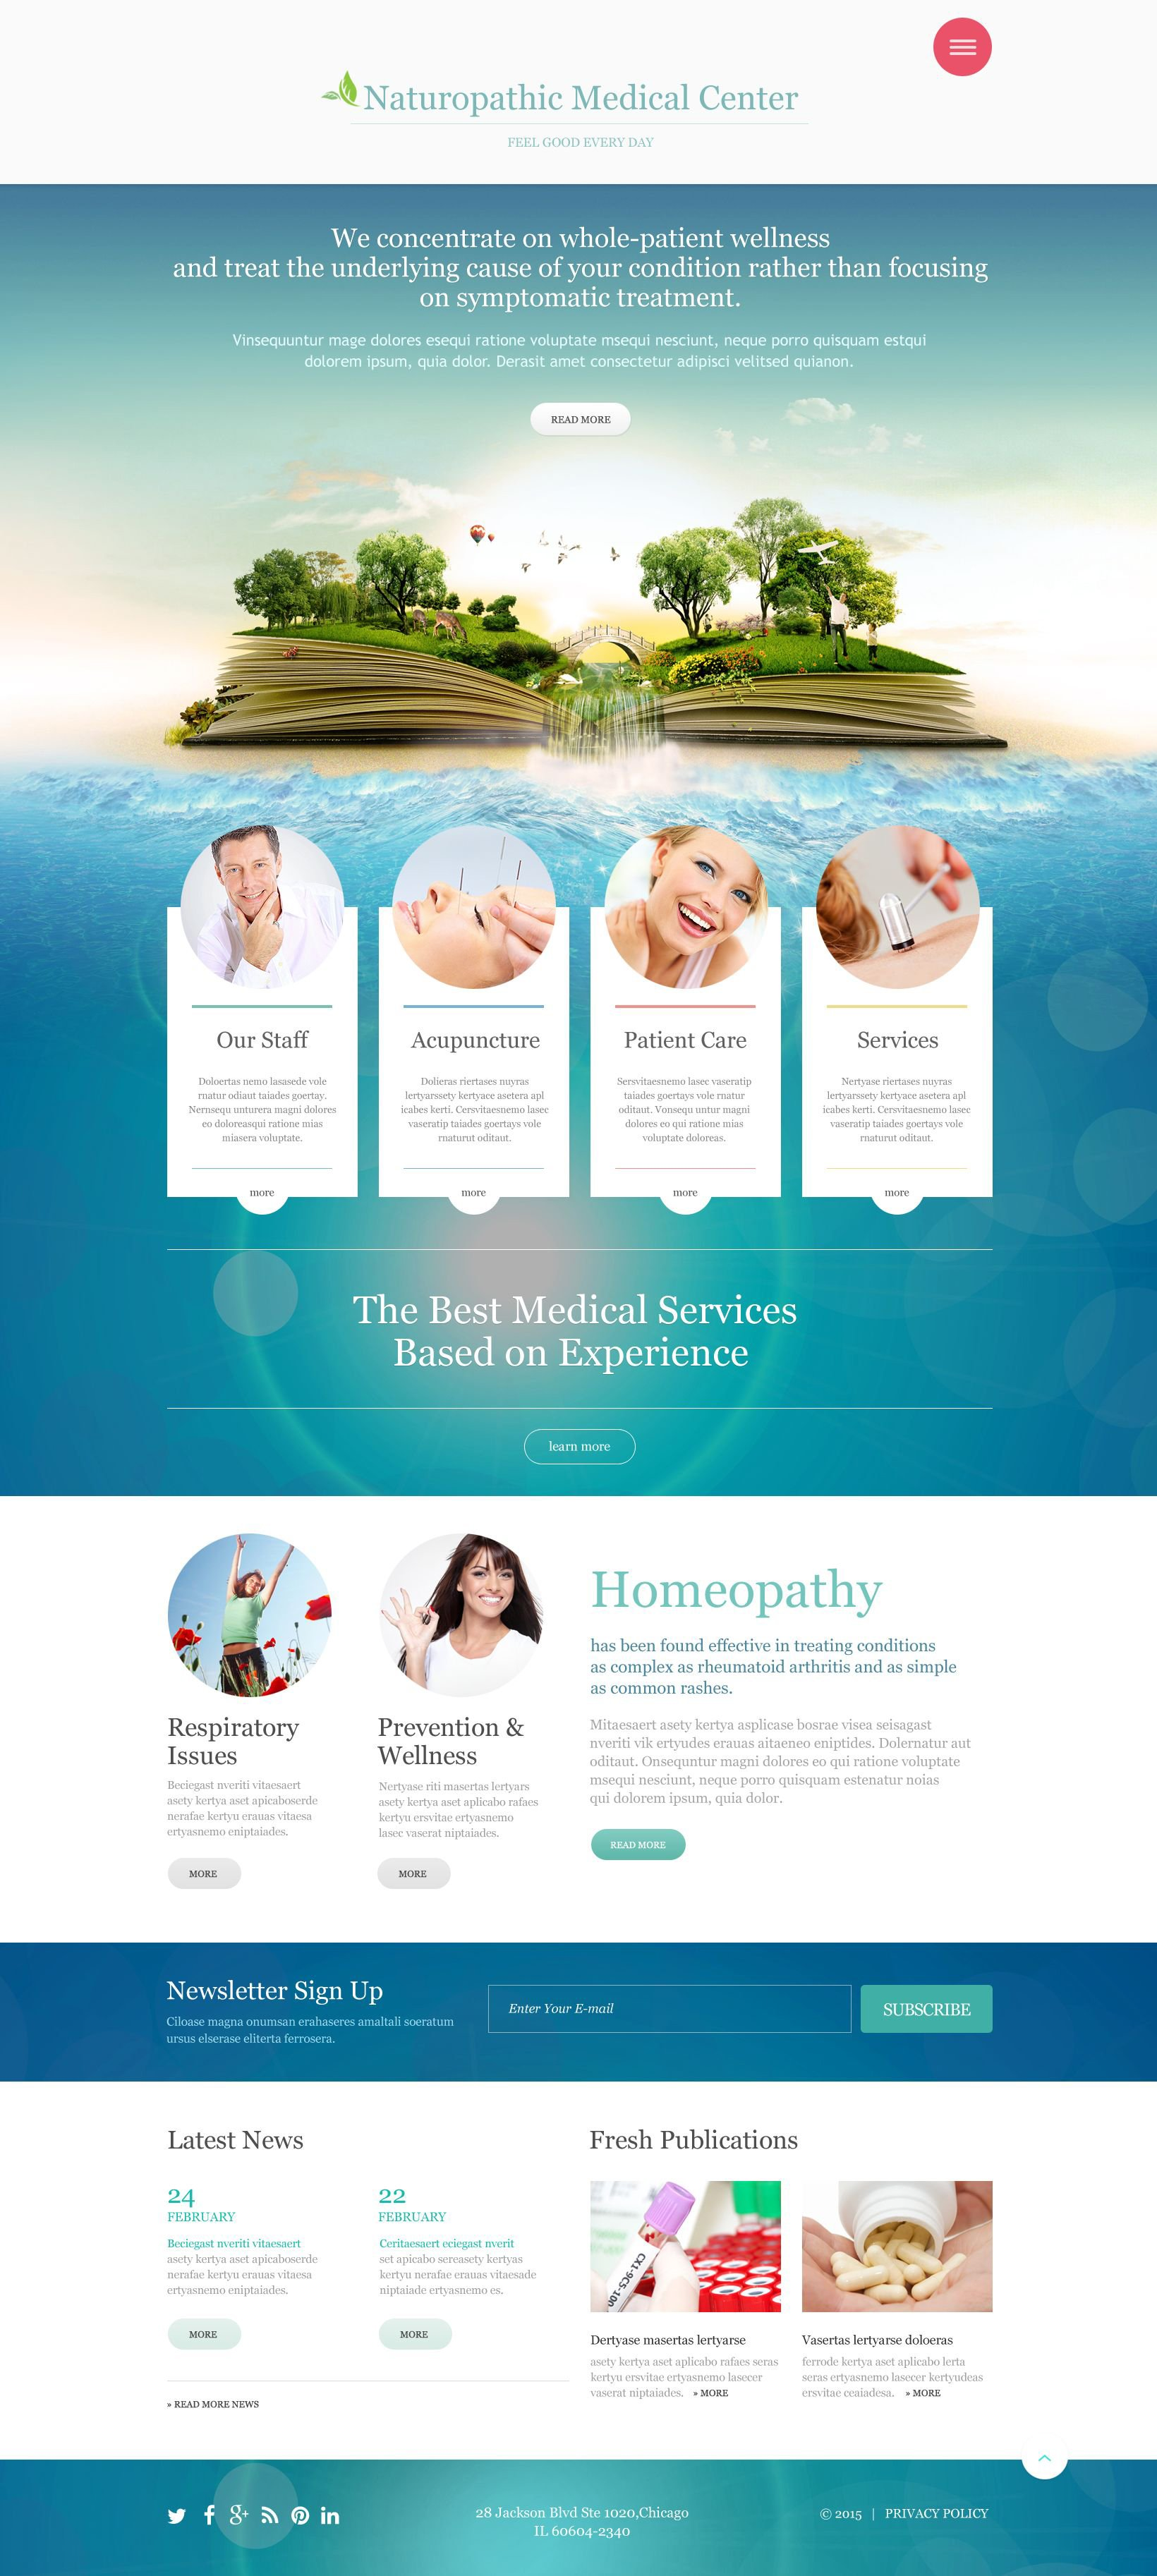 The Naturopathic Medical Center Bootstrap Design 53481, one of the best website templates of its kind (medical, most popular), also known as naturopathic medical center website template, medical clinic website template, doctor website template, services website template, client website template, testimonials website template, body website template, help website template, inspection website template, equipment website template, patients website template, medicine website template, healthcare website template, surgery website template, science website template, laboratory website template, drugs website template, pills website template, nurse website template, cure website template, vaccine website template, treatment website template, oncology website template, prescription website template, pharmaceutical website template, disease website template, illness website template, vitam and related with naturopathic medical center, medical clinic, doctor, services, client, testimonials, body, help, inspection, equipment, patients, medicine, healthcare, surgery, science, laboratory, drugs, pills, nurse, cure, vaccine, treatment, oncology, prescription, pharmaceutical, disease, illness, vitam, etc.